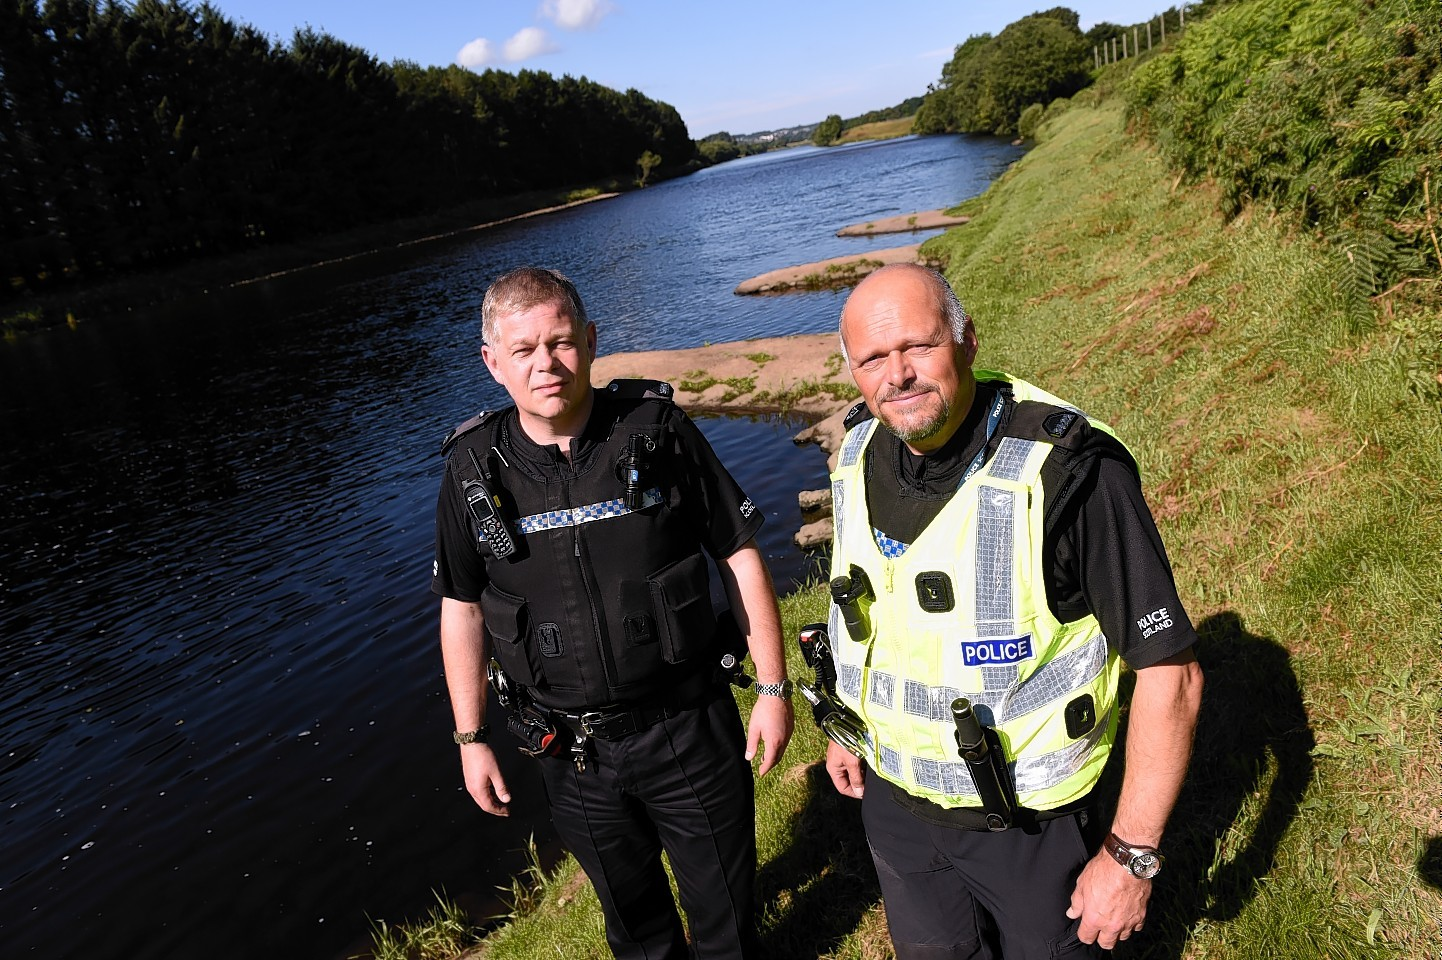 Constables Steve Lafferty and Mike Whyte patrolling the River Dee